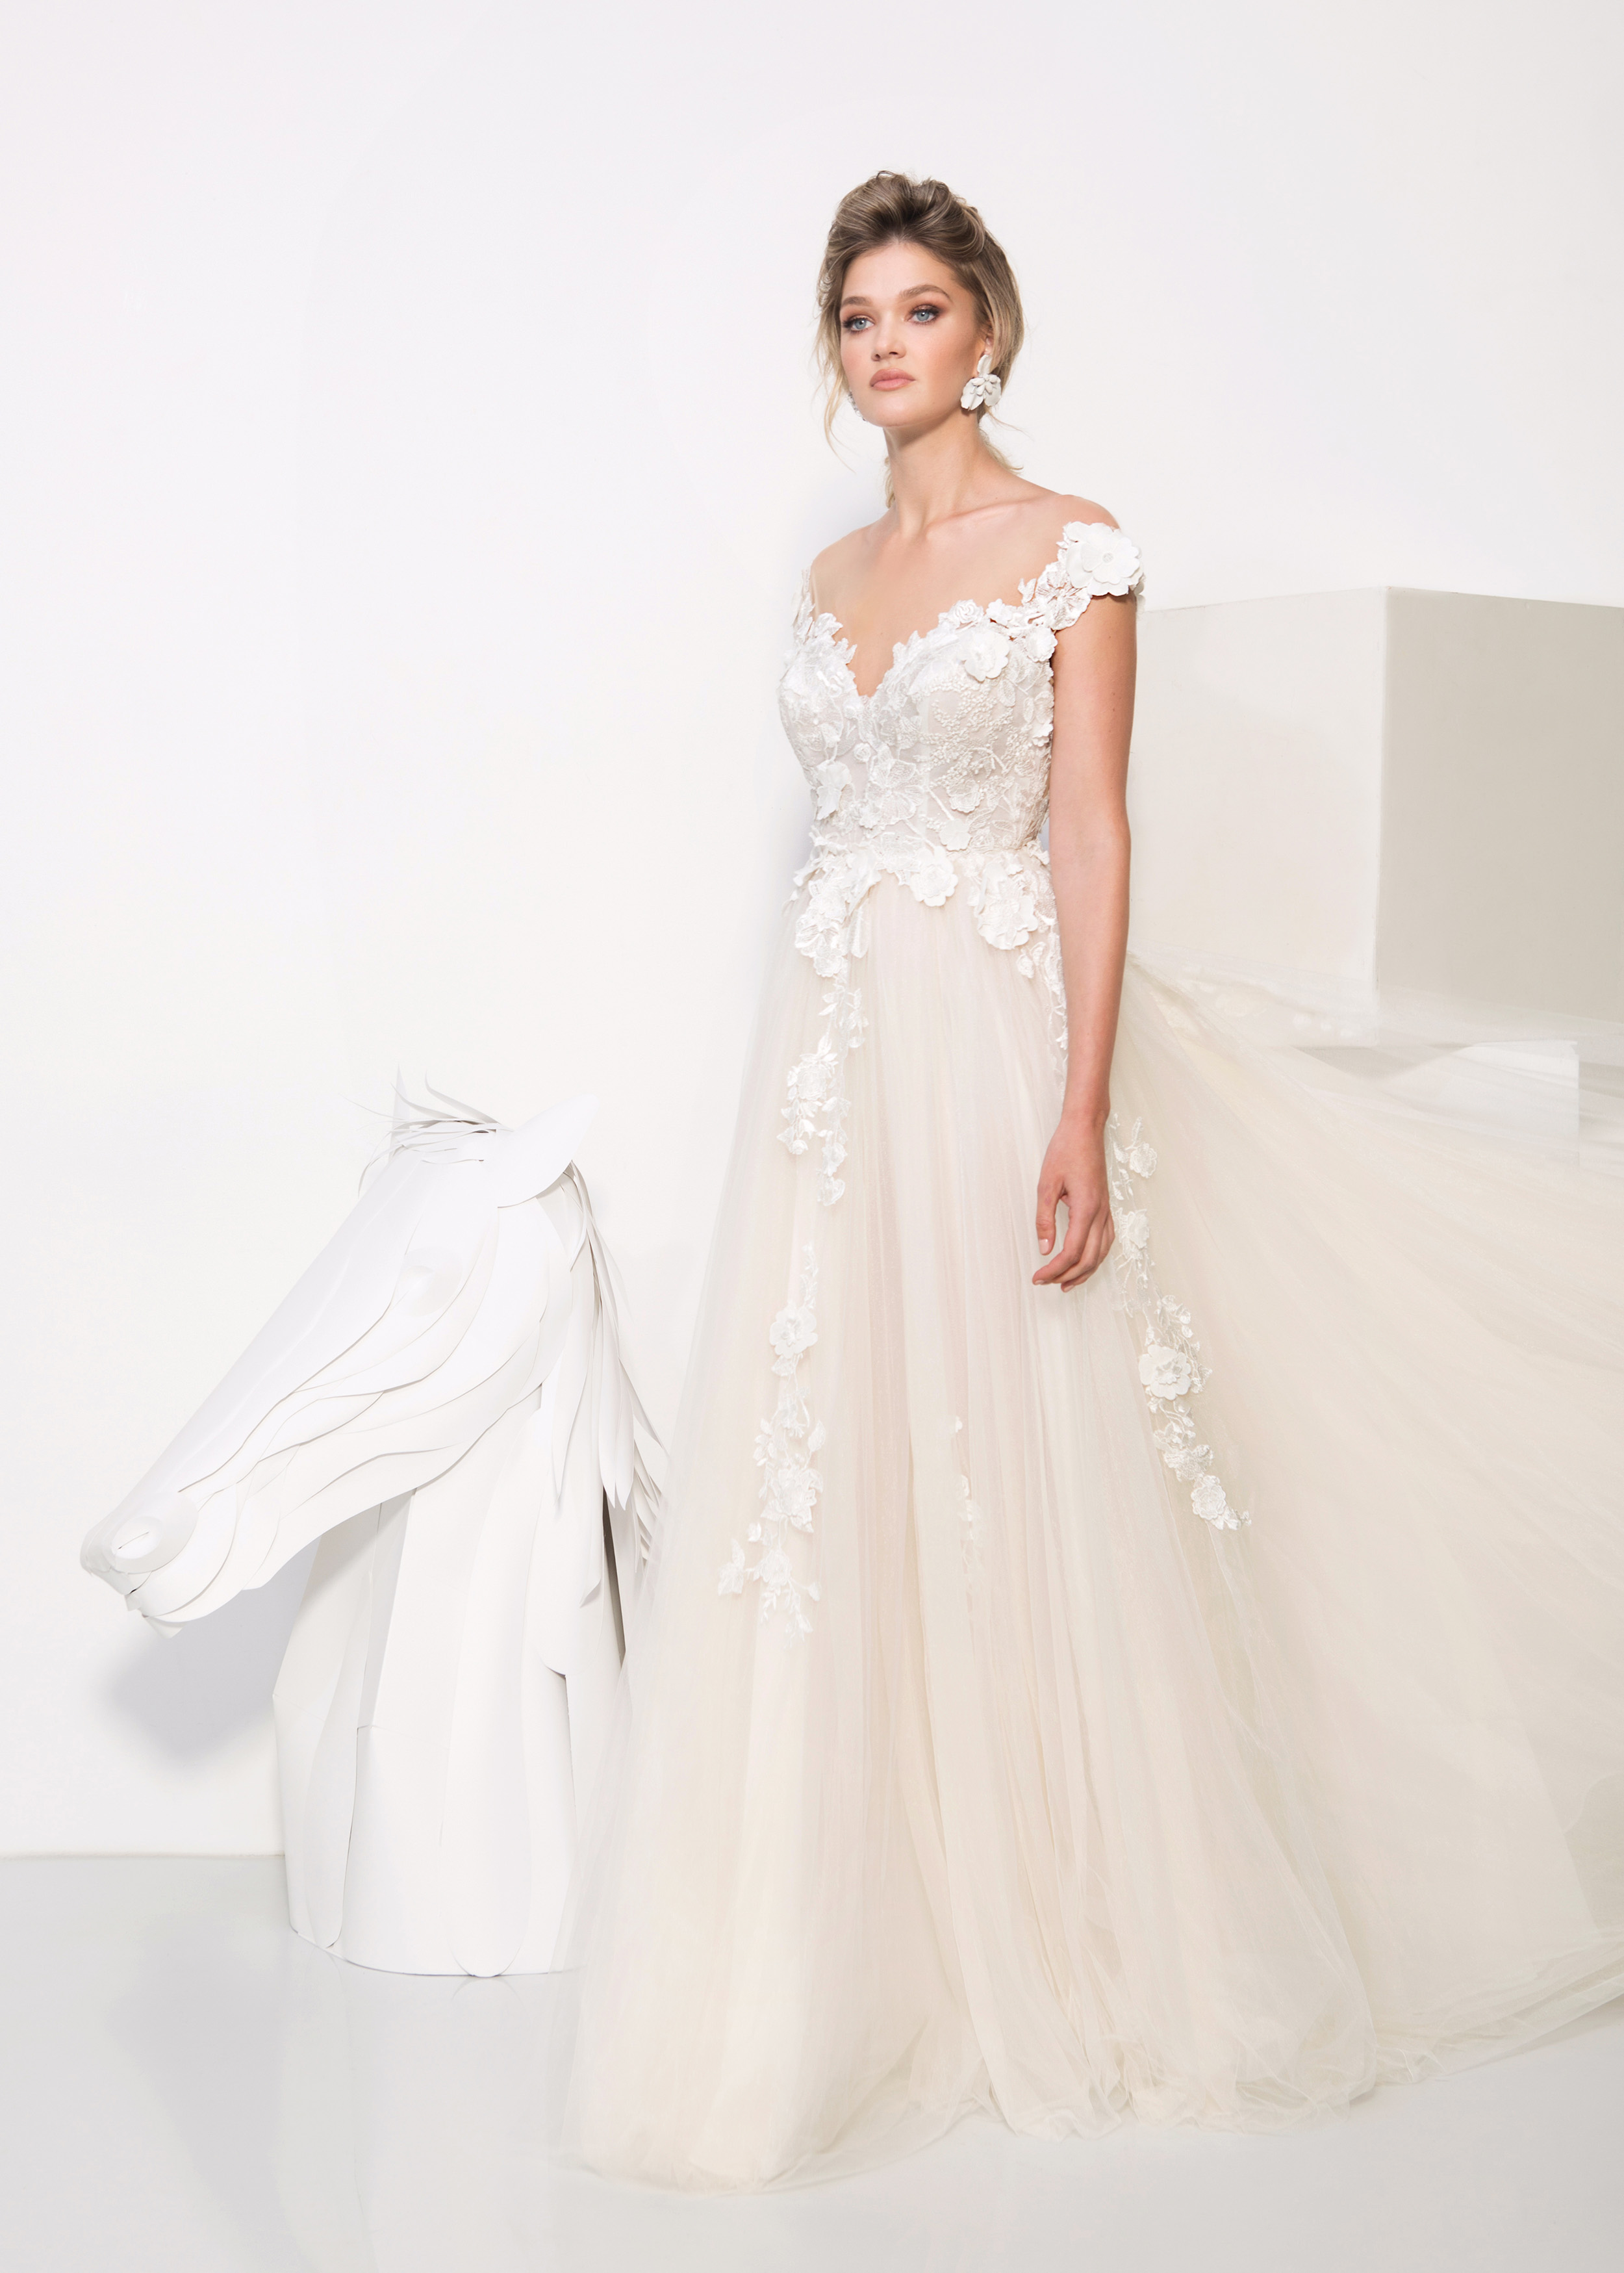 persy wedding dress spring 2019 floral applique sweetheart a-line gown